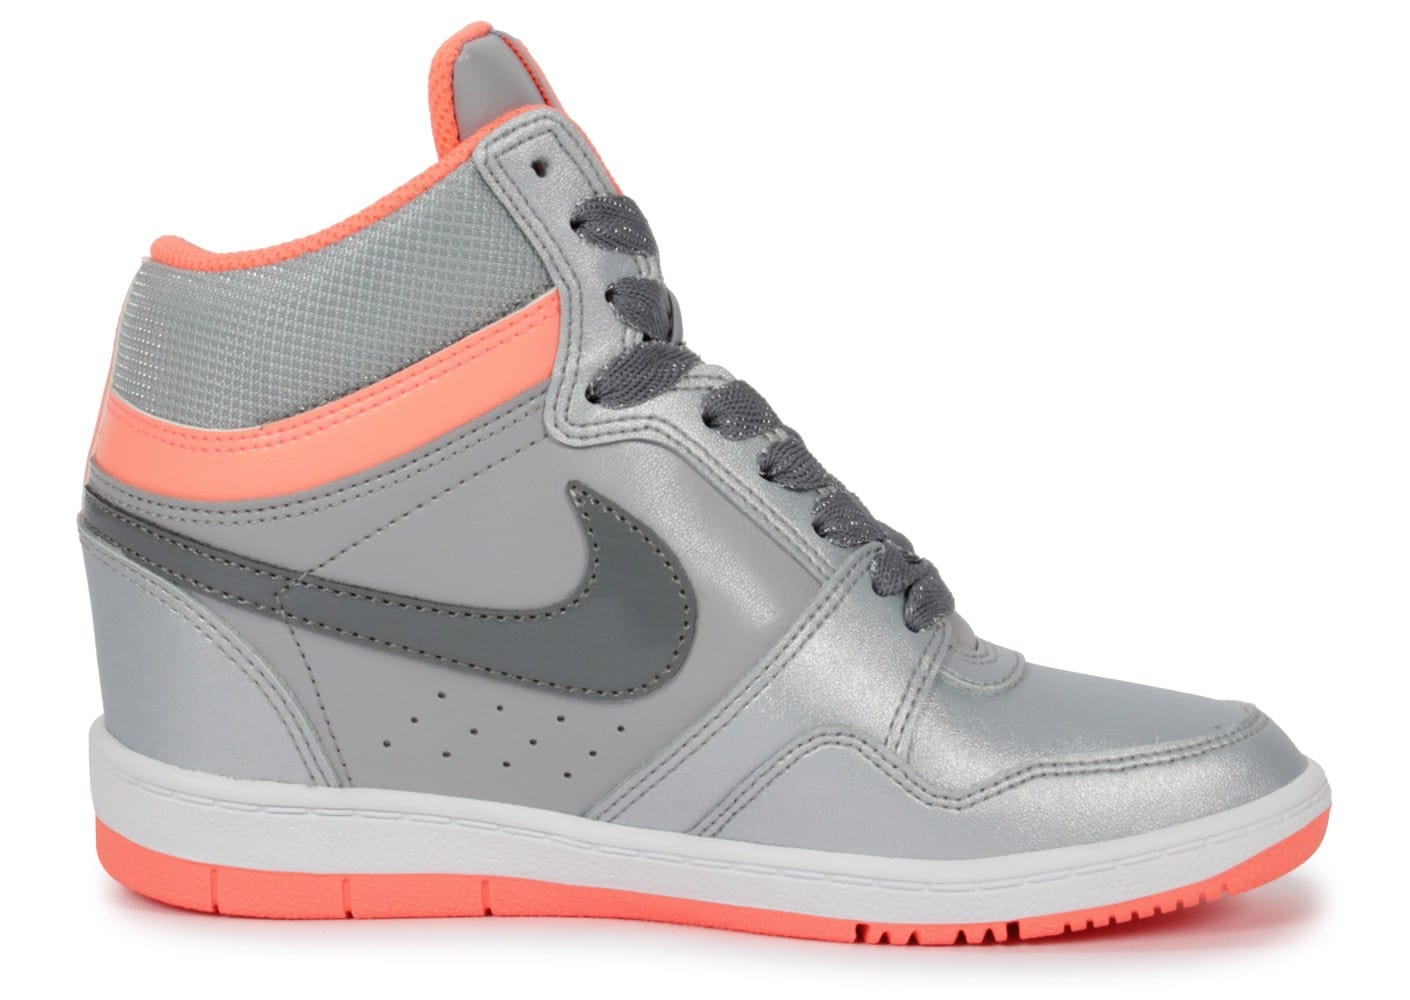 2a2f3a0db4b Nike Force Sky Compensée Grise - Chaussures Chaussures - Chausport